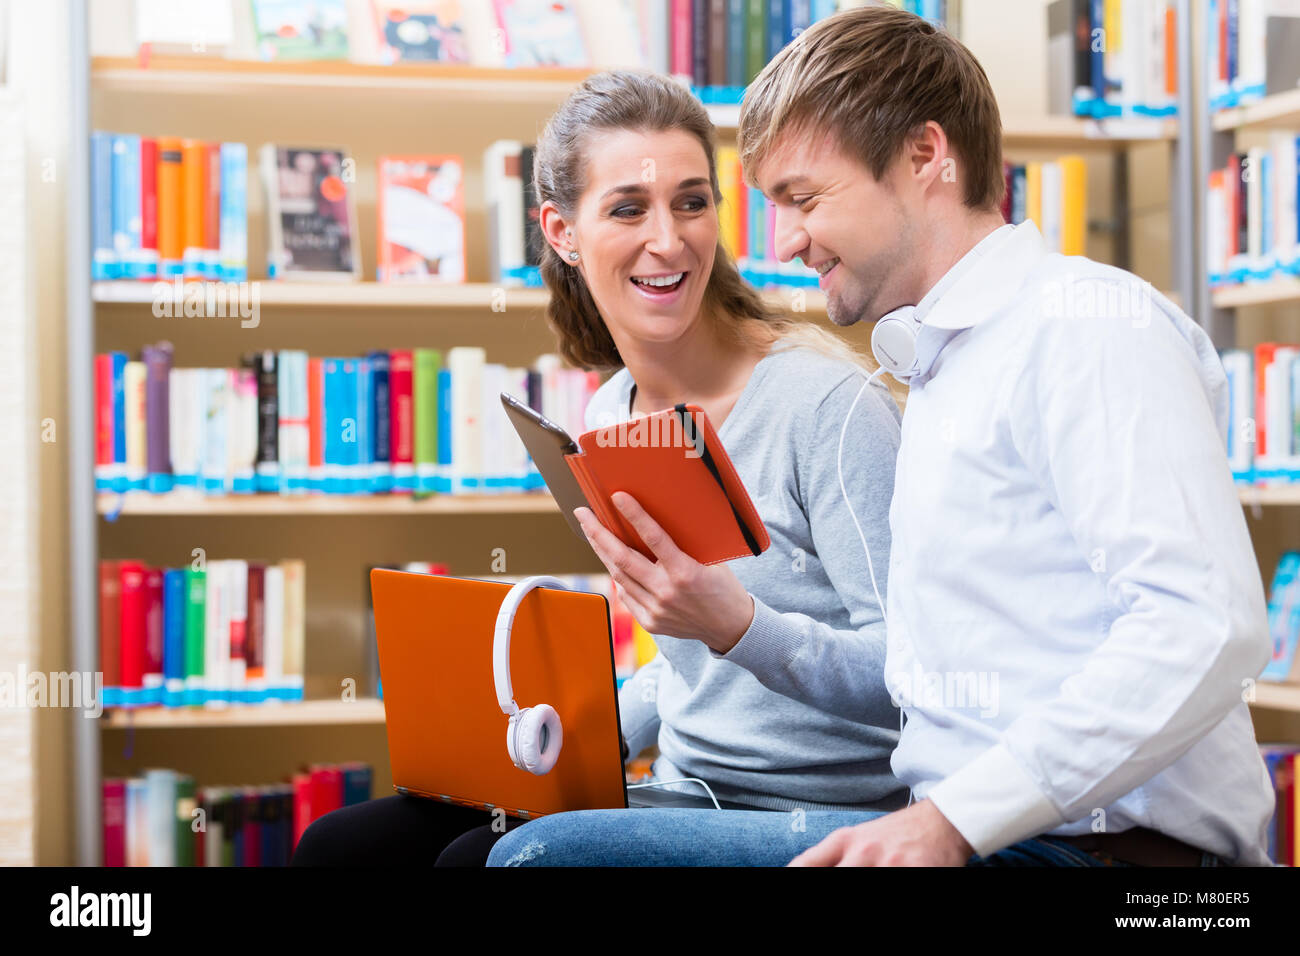 Woman and man reading e-book in library - Stock Image